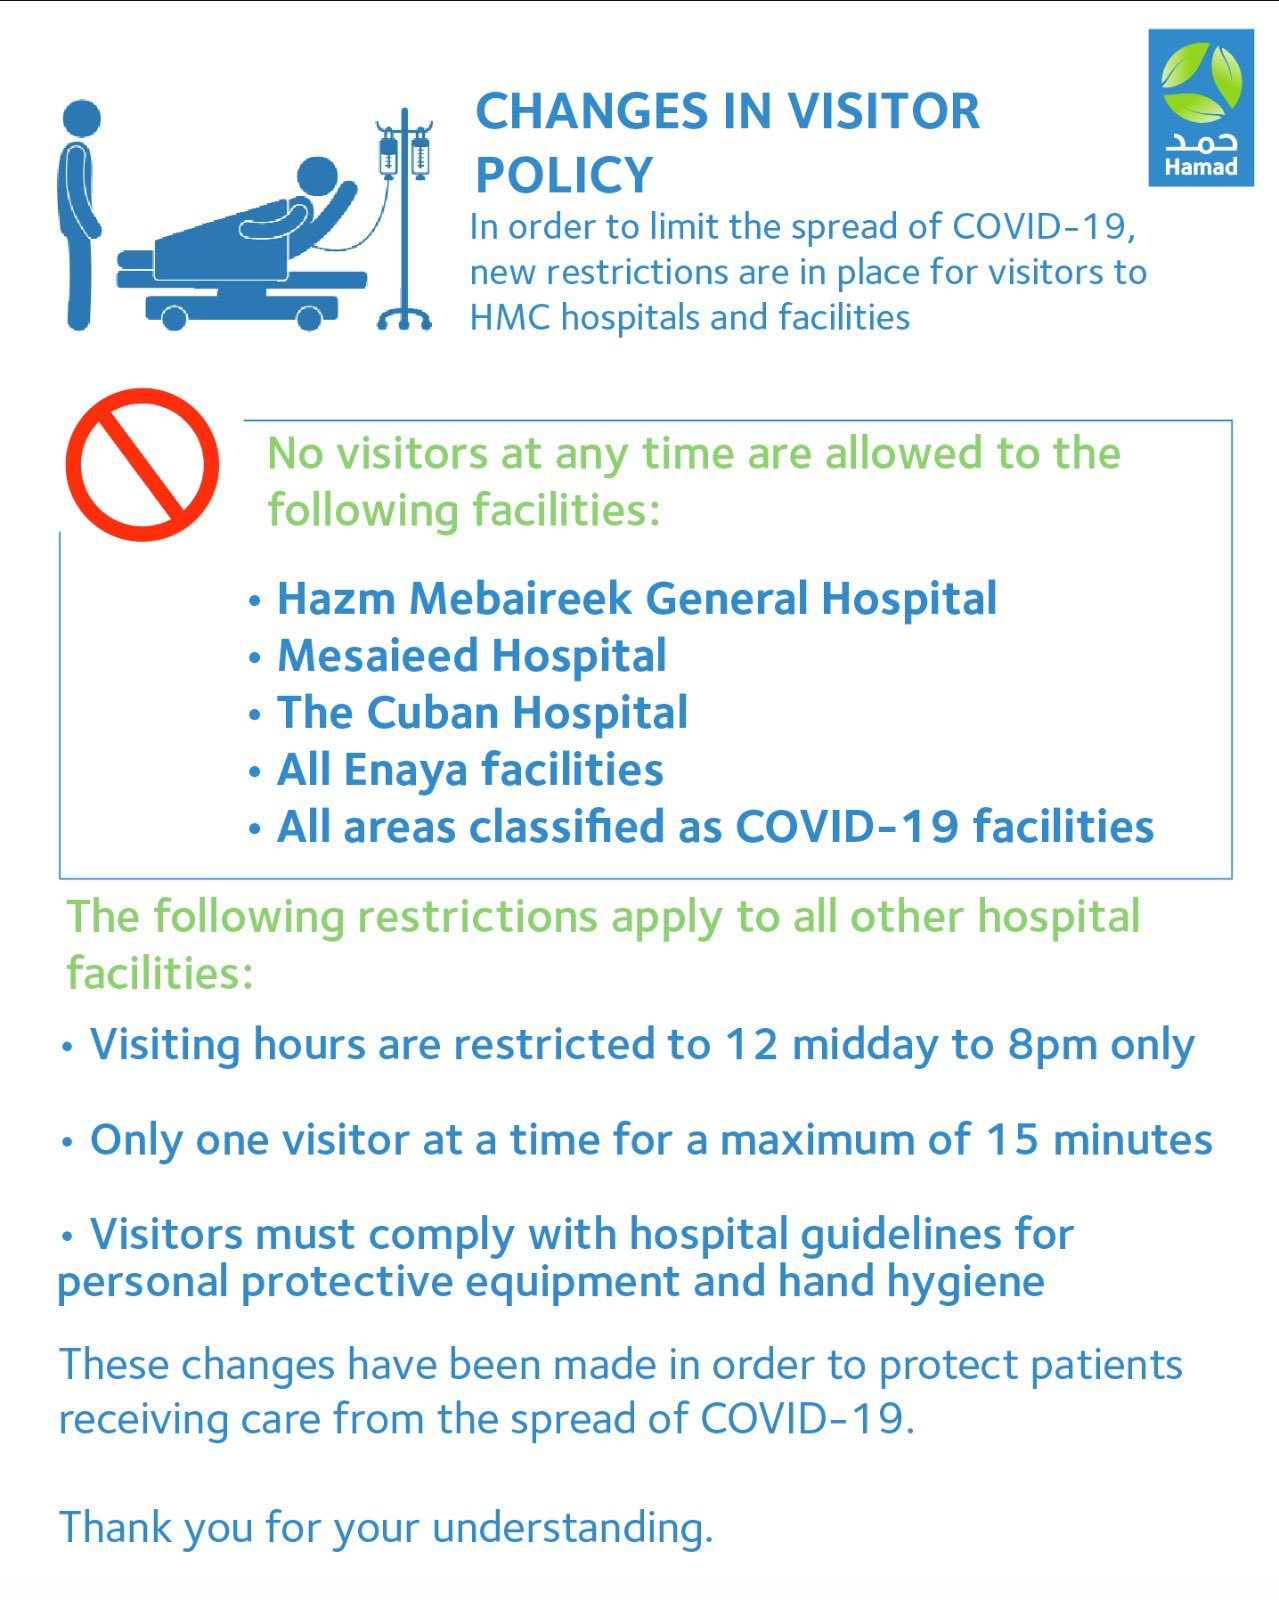 HMC issues changes in visitor policies for its facilities and hospitals